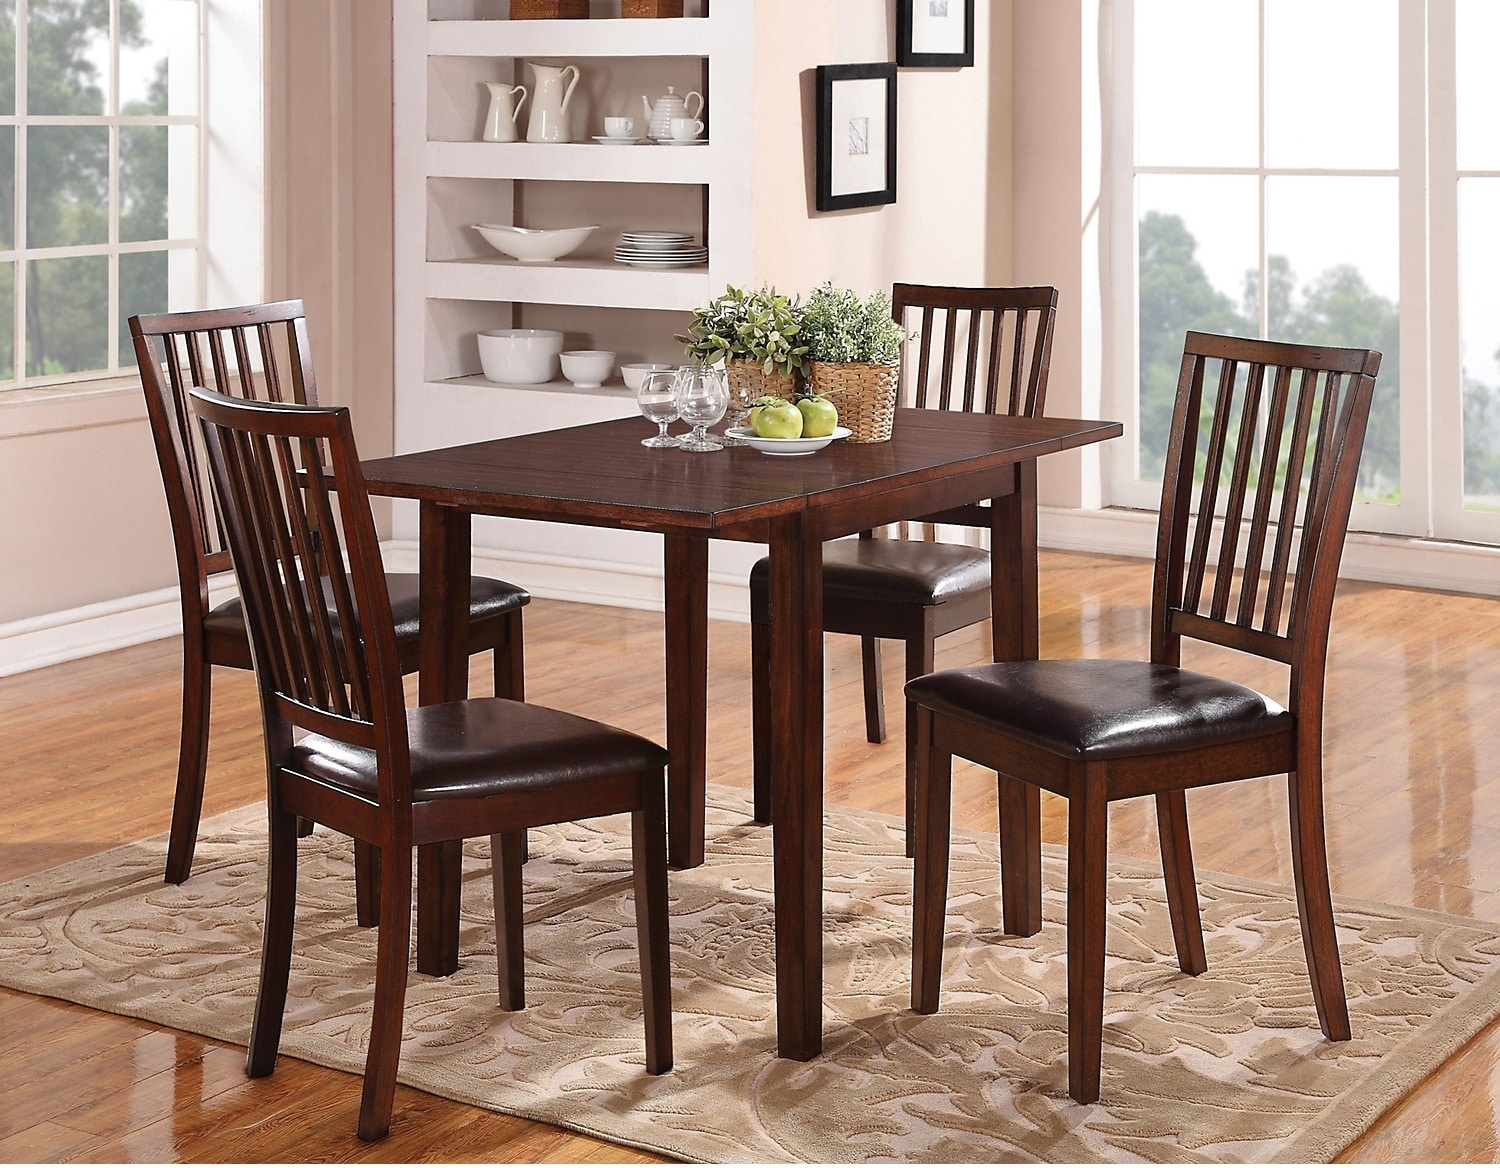 Dining Room Furniture - Adara 5-Piece Square Table Dining Package